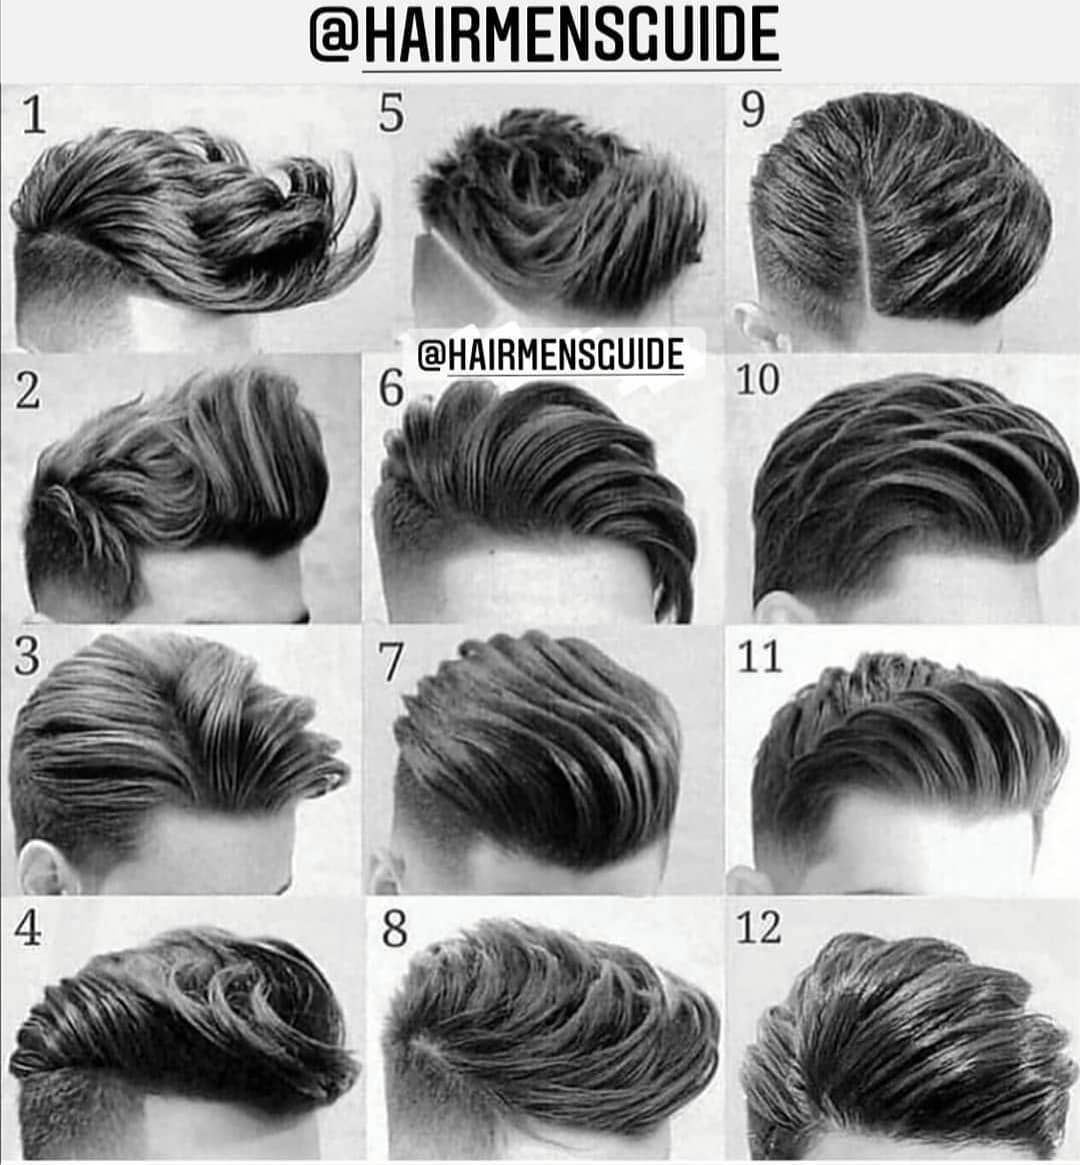 Hairstyle Ideas For Men Smart Hairstyle Fashion Hair Goals Smart Fashion Tips And Ideas Men Hair In 2020 Hair Styles Thick Hair Styles Gents Hair Style